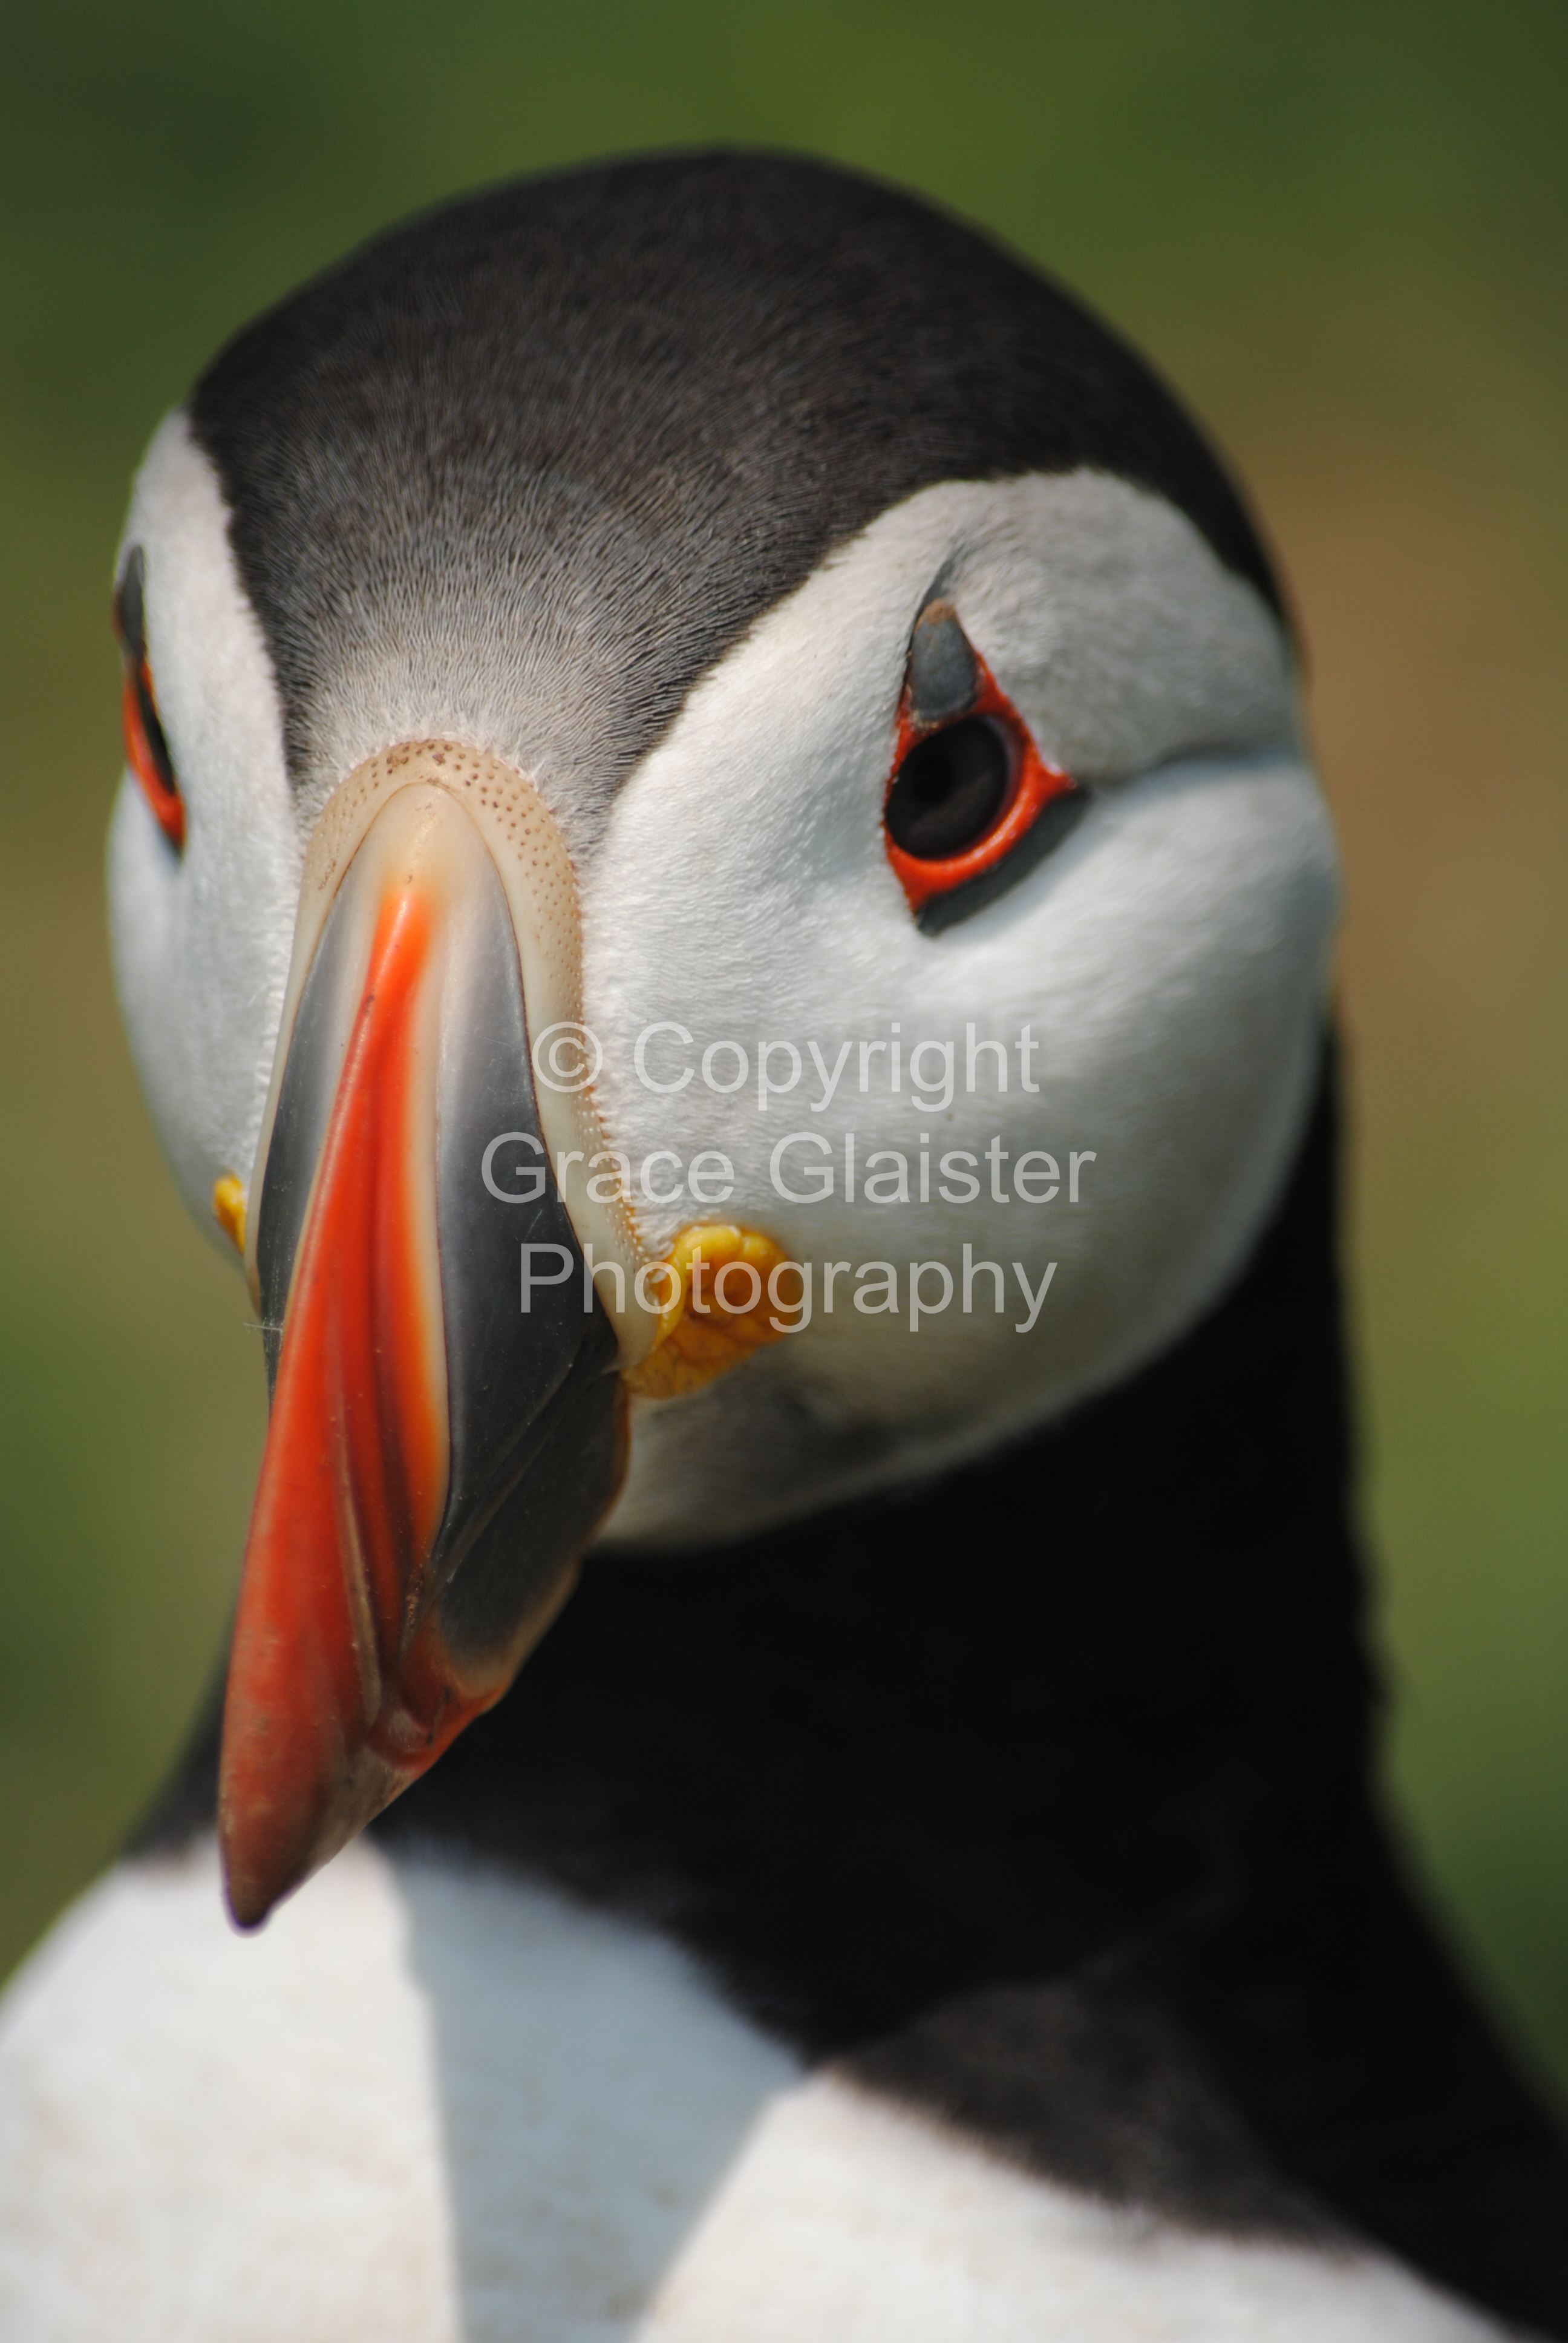 Puffin by Grace Glaister